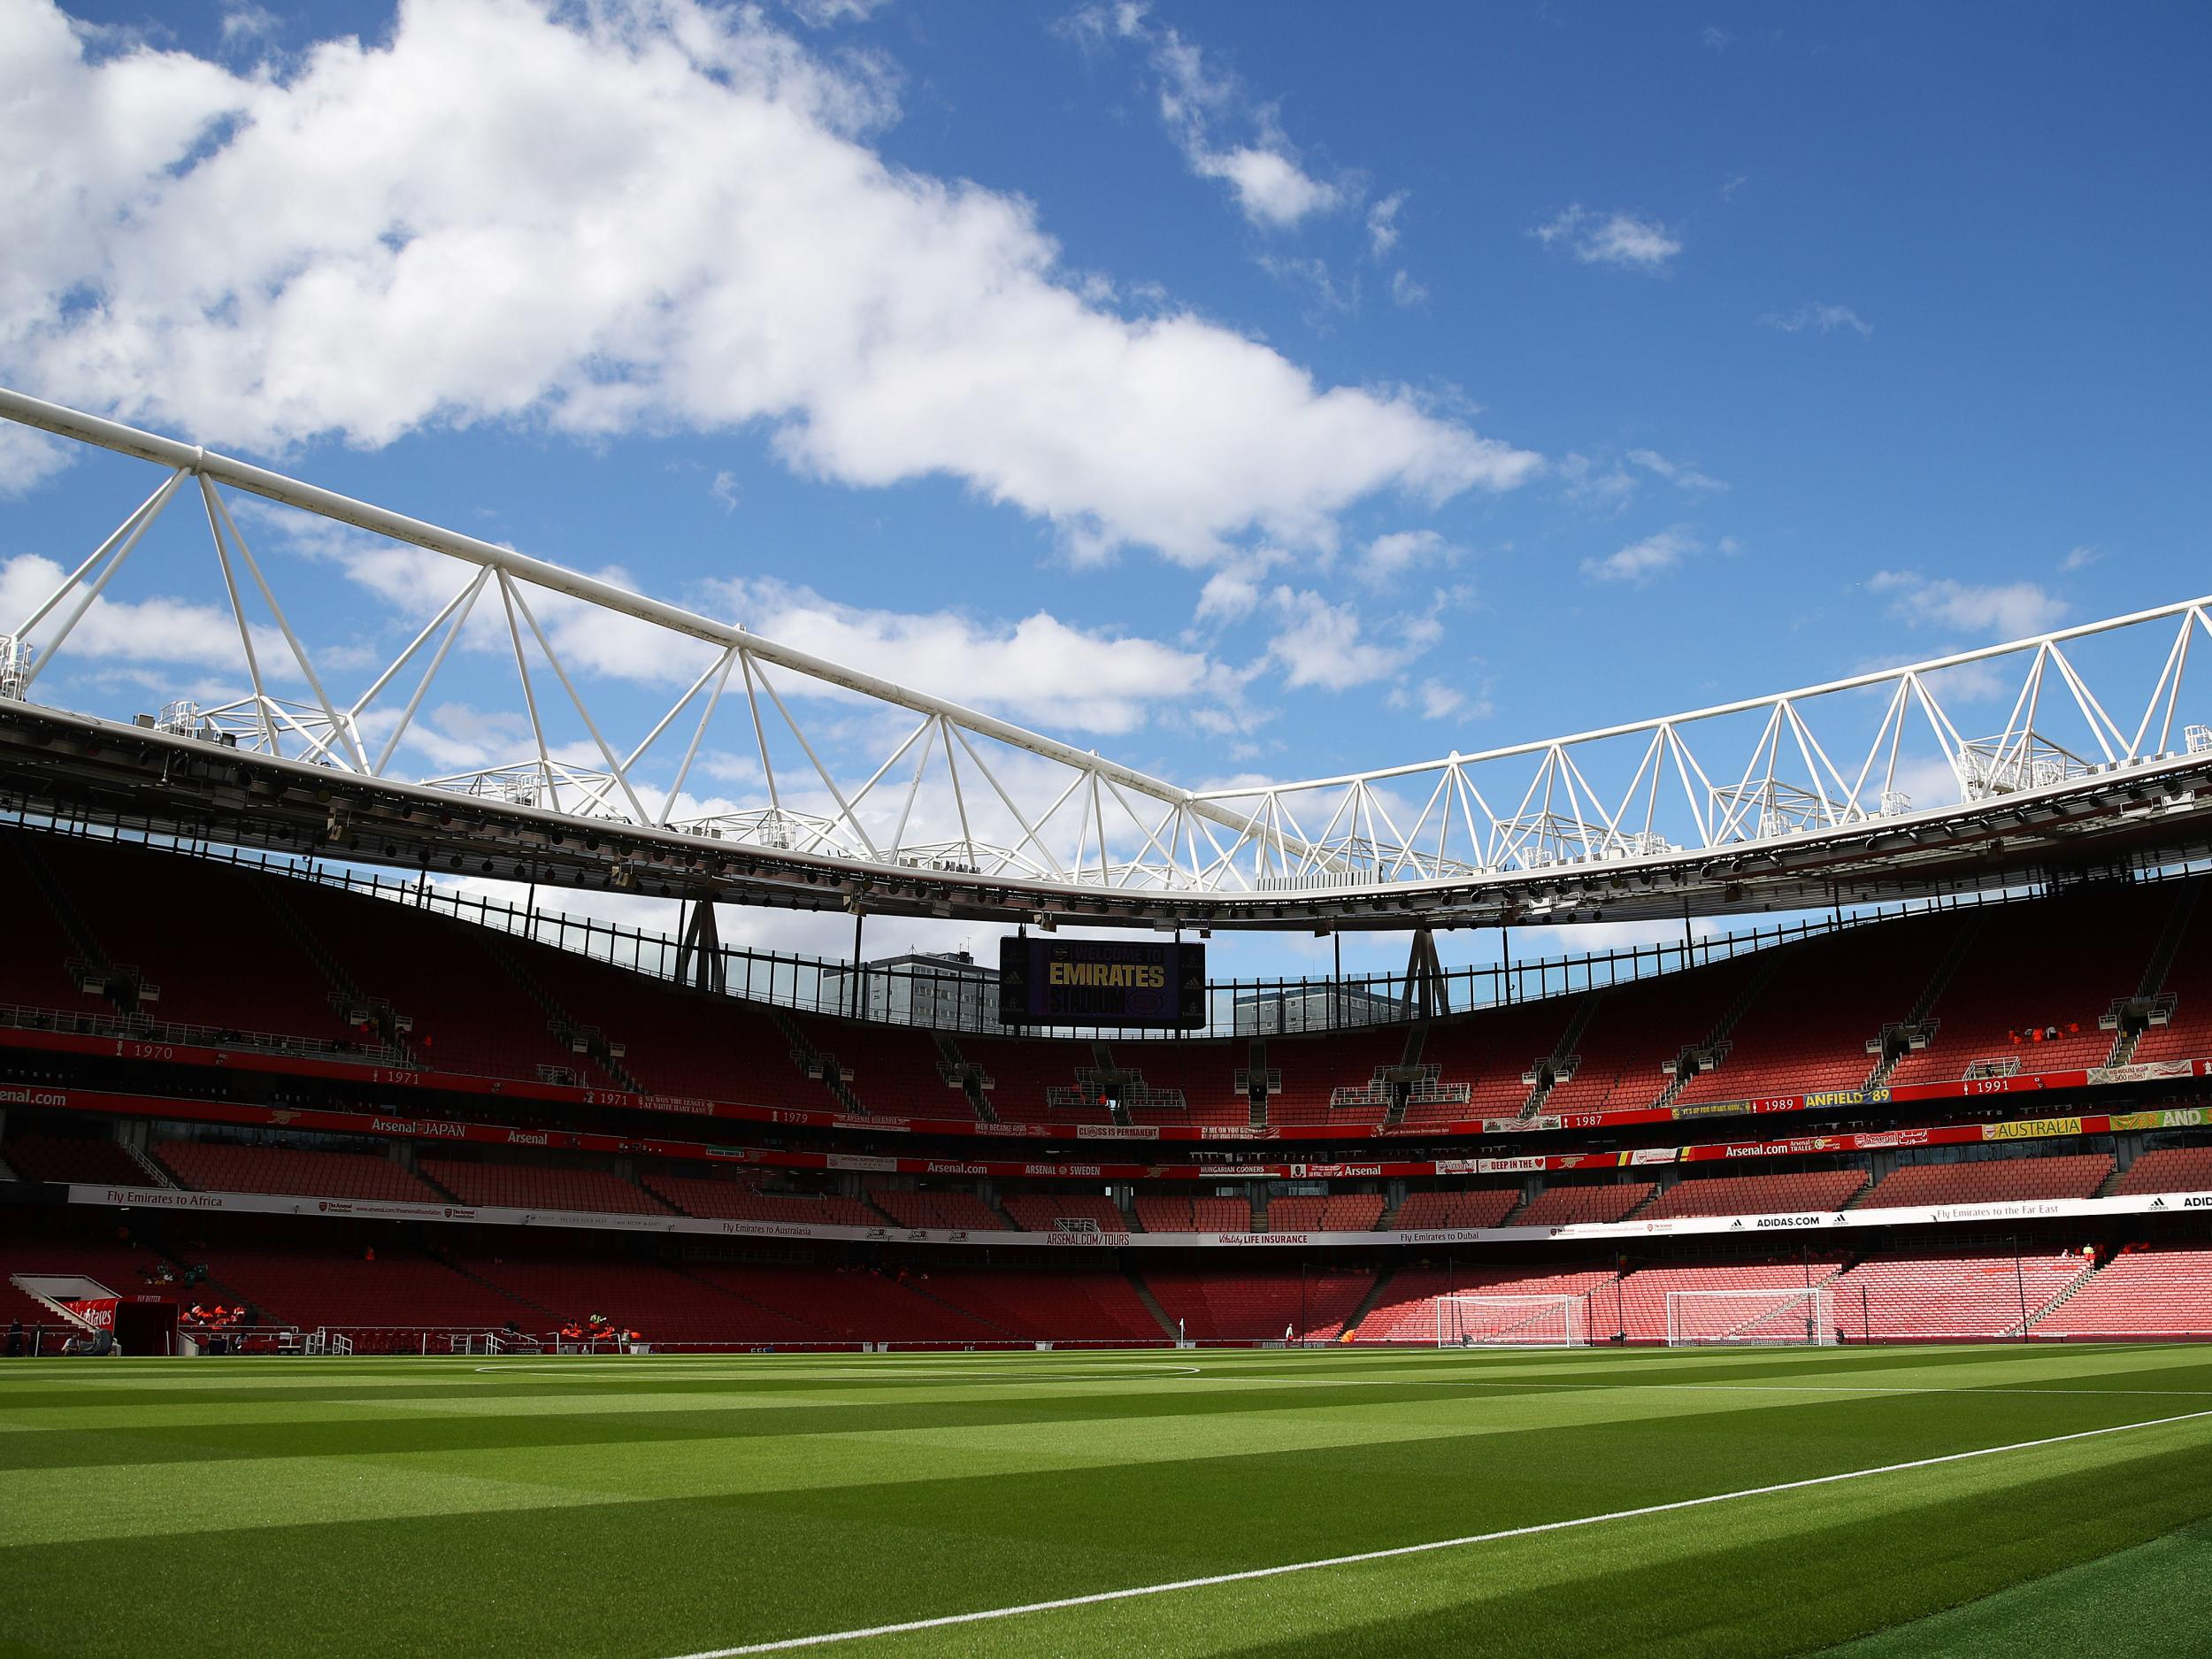 Arsenal vs Aston Villa: How to stream online, watch on TV, channel info and more for Premier League game